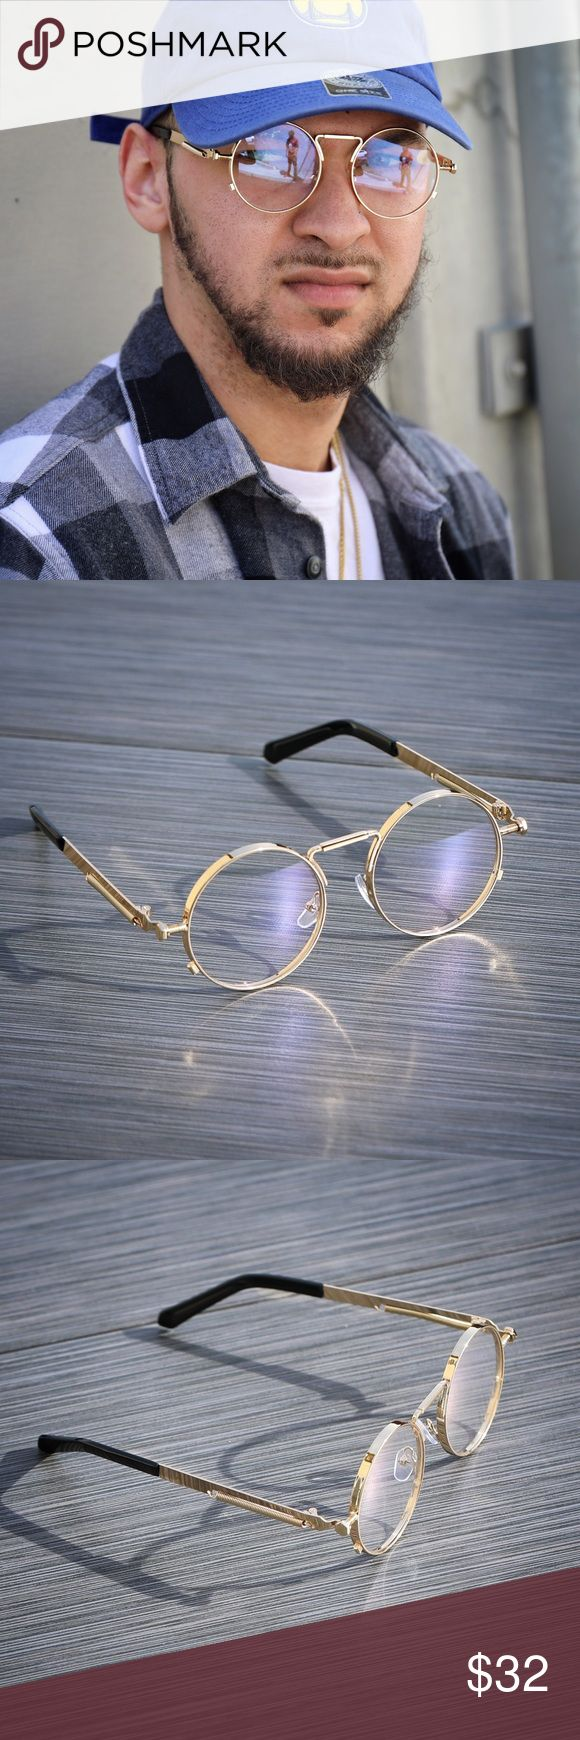 Mens Hip Hop Round Gold Frame Clear Eye Glasses Round Gold Frame Mens Clear Eye Glasses  Frame Material: Alloy Lens Width: 50mm Lens Height: 50mm  Lens Material: Polycarbonate Ts Verniel Accessories Glasses